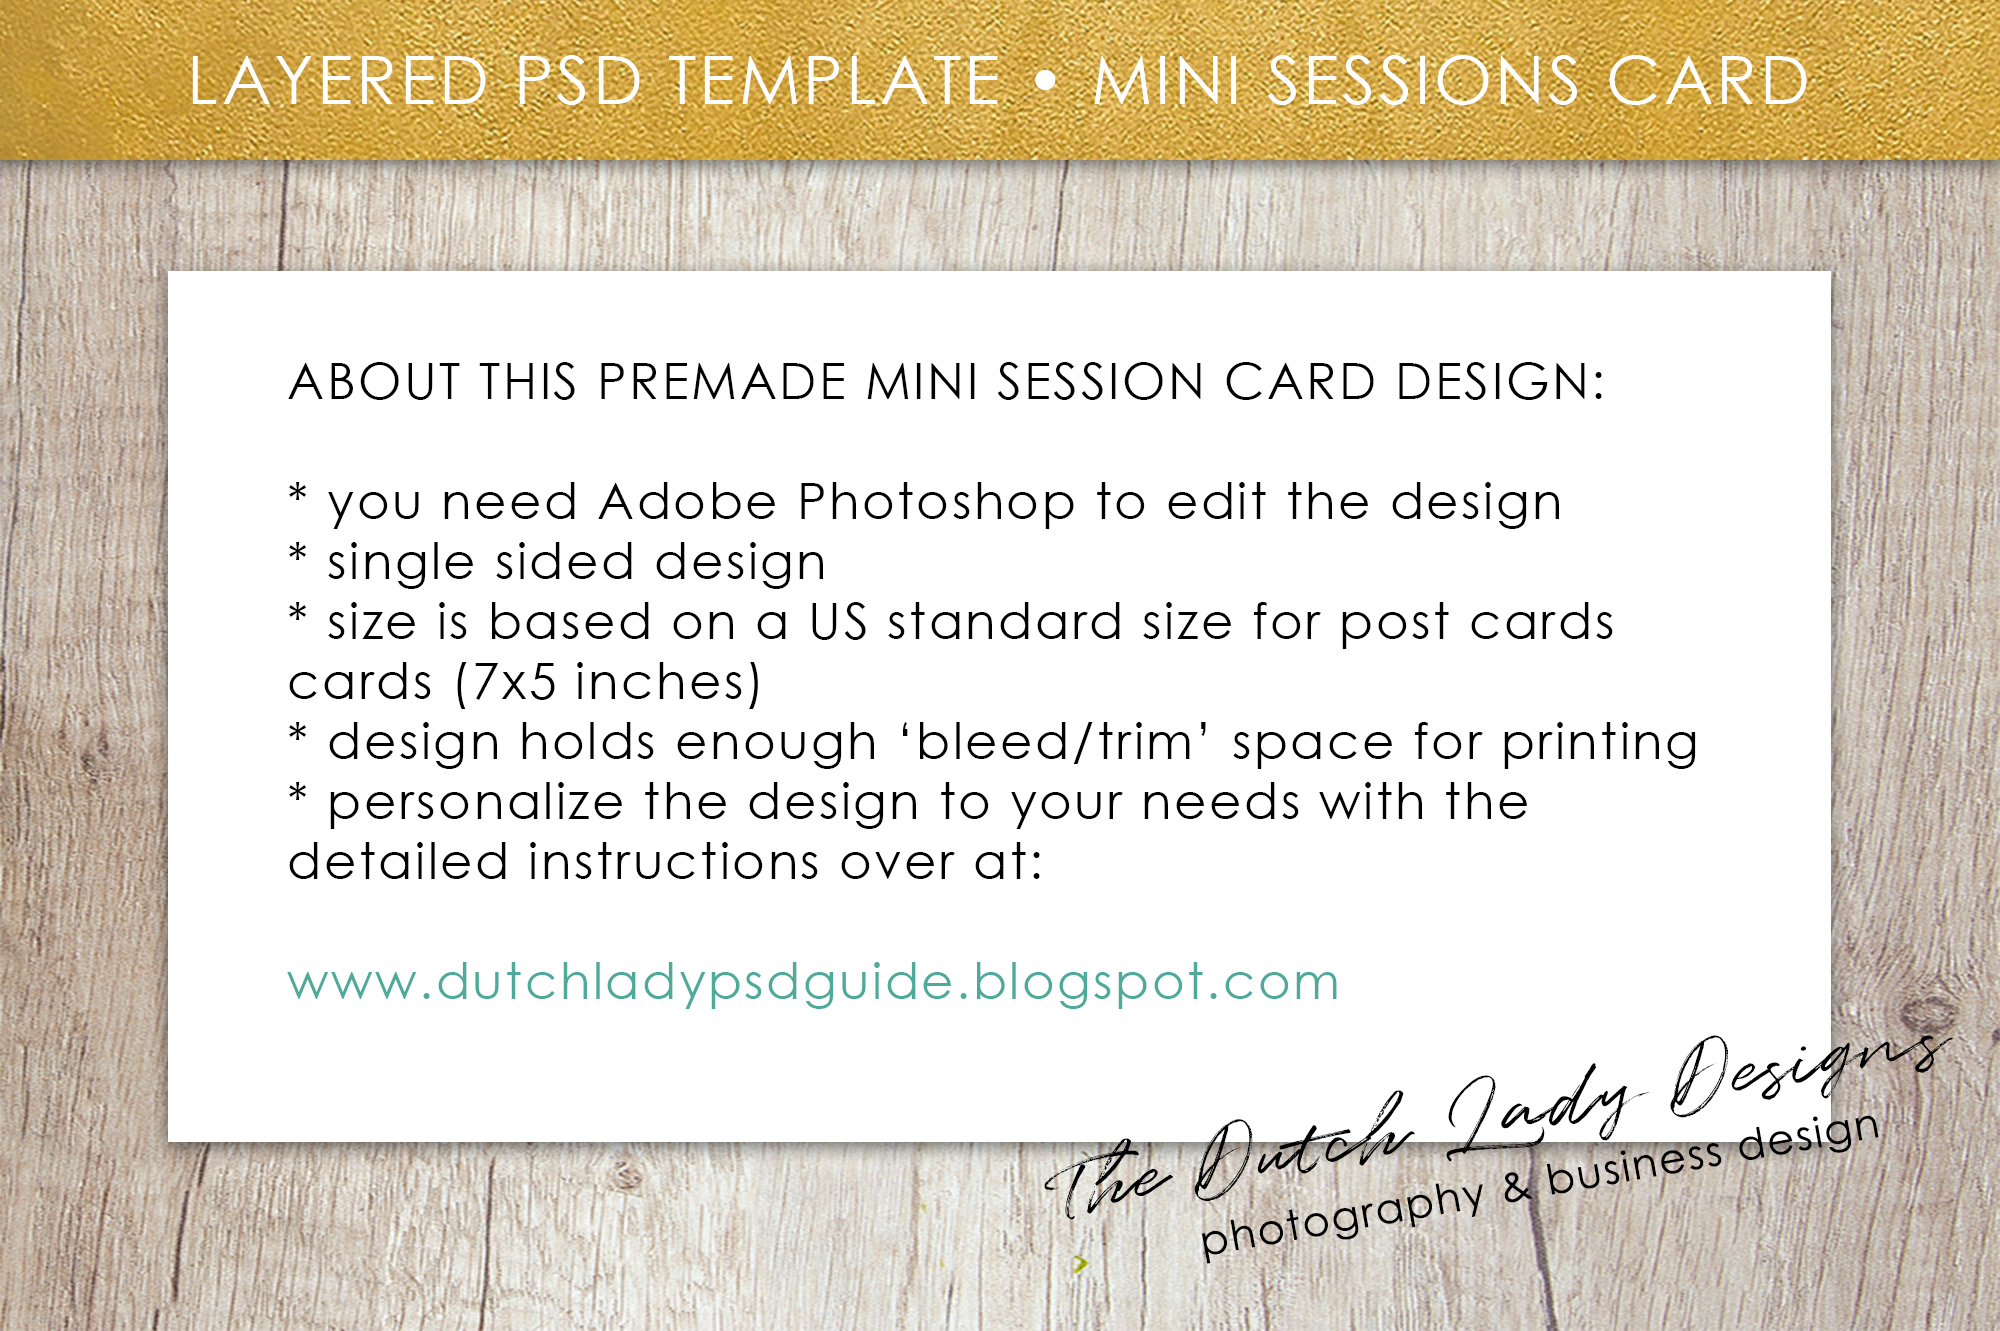 PSD Wedding Photo Session Card Template - Design #34 example image 5